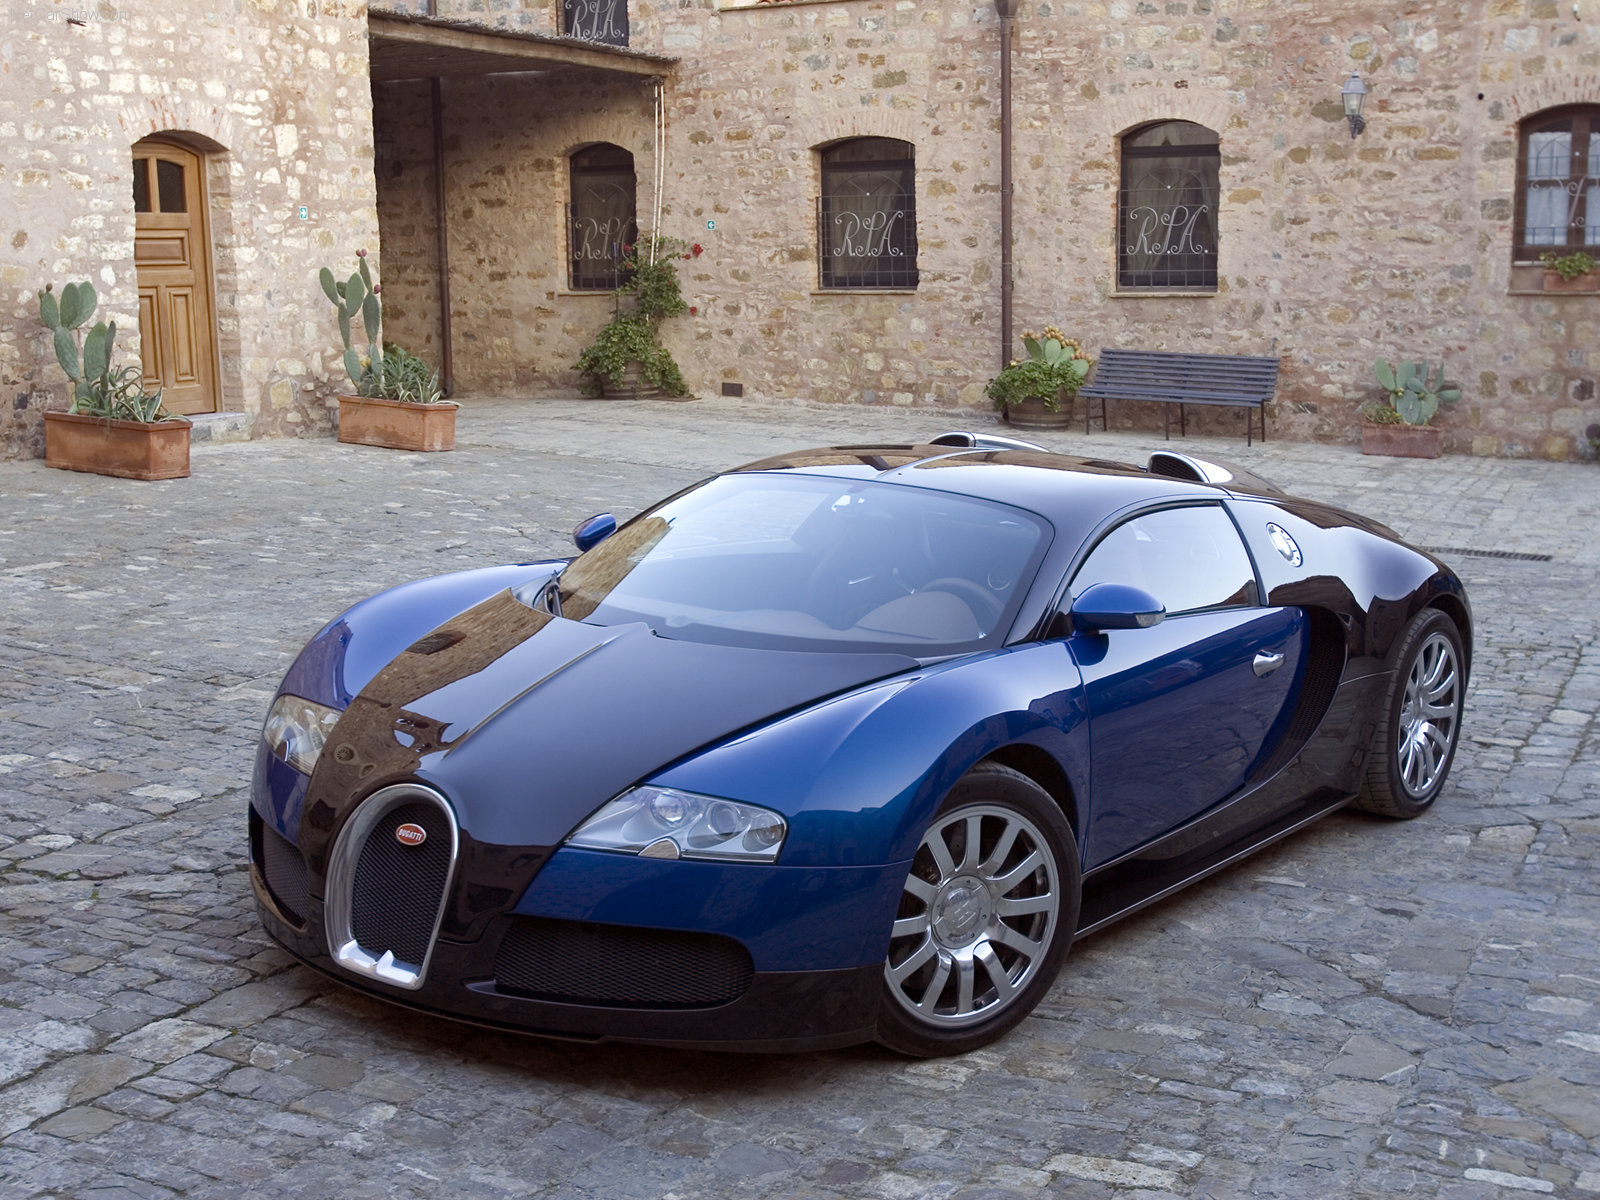 Bugatti Veyron Wallpaper Cars And Specifications